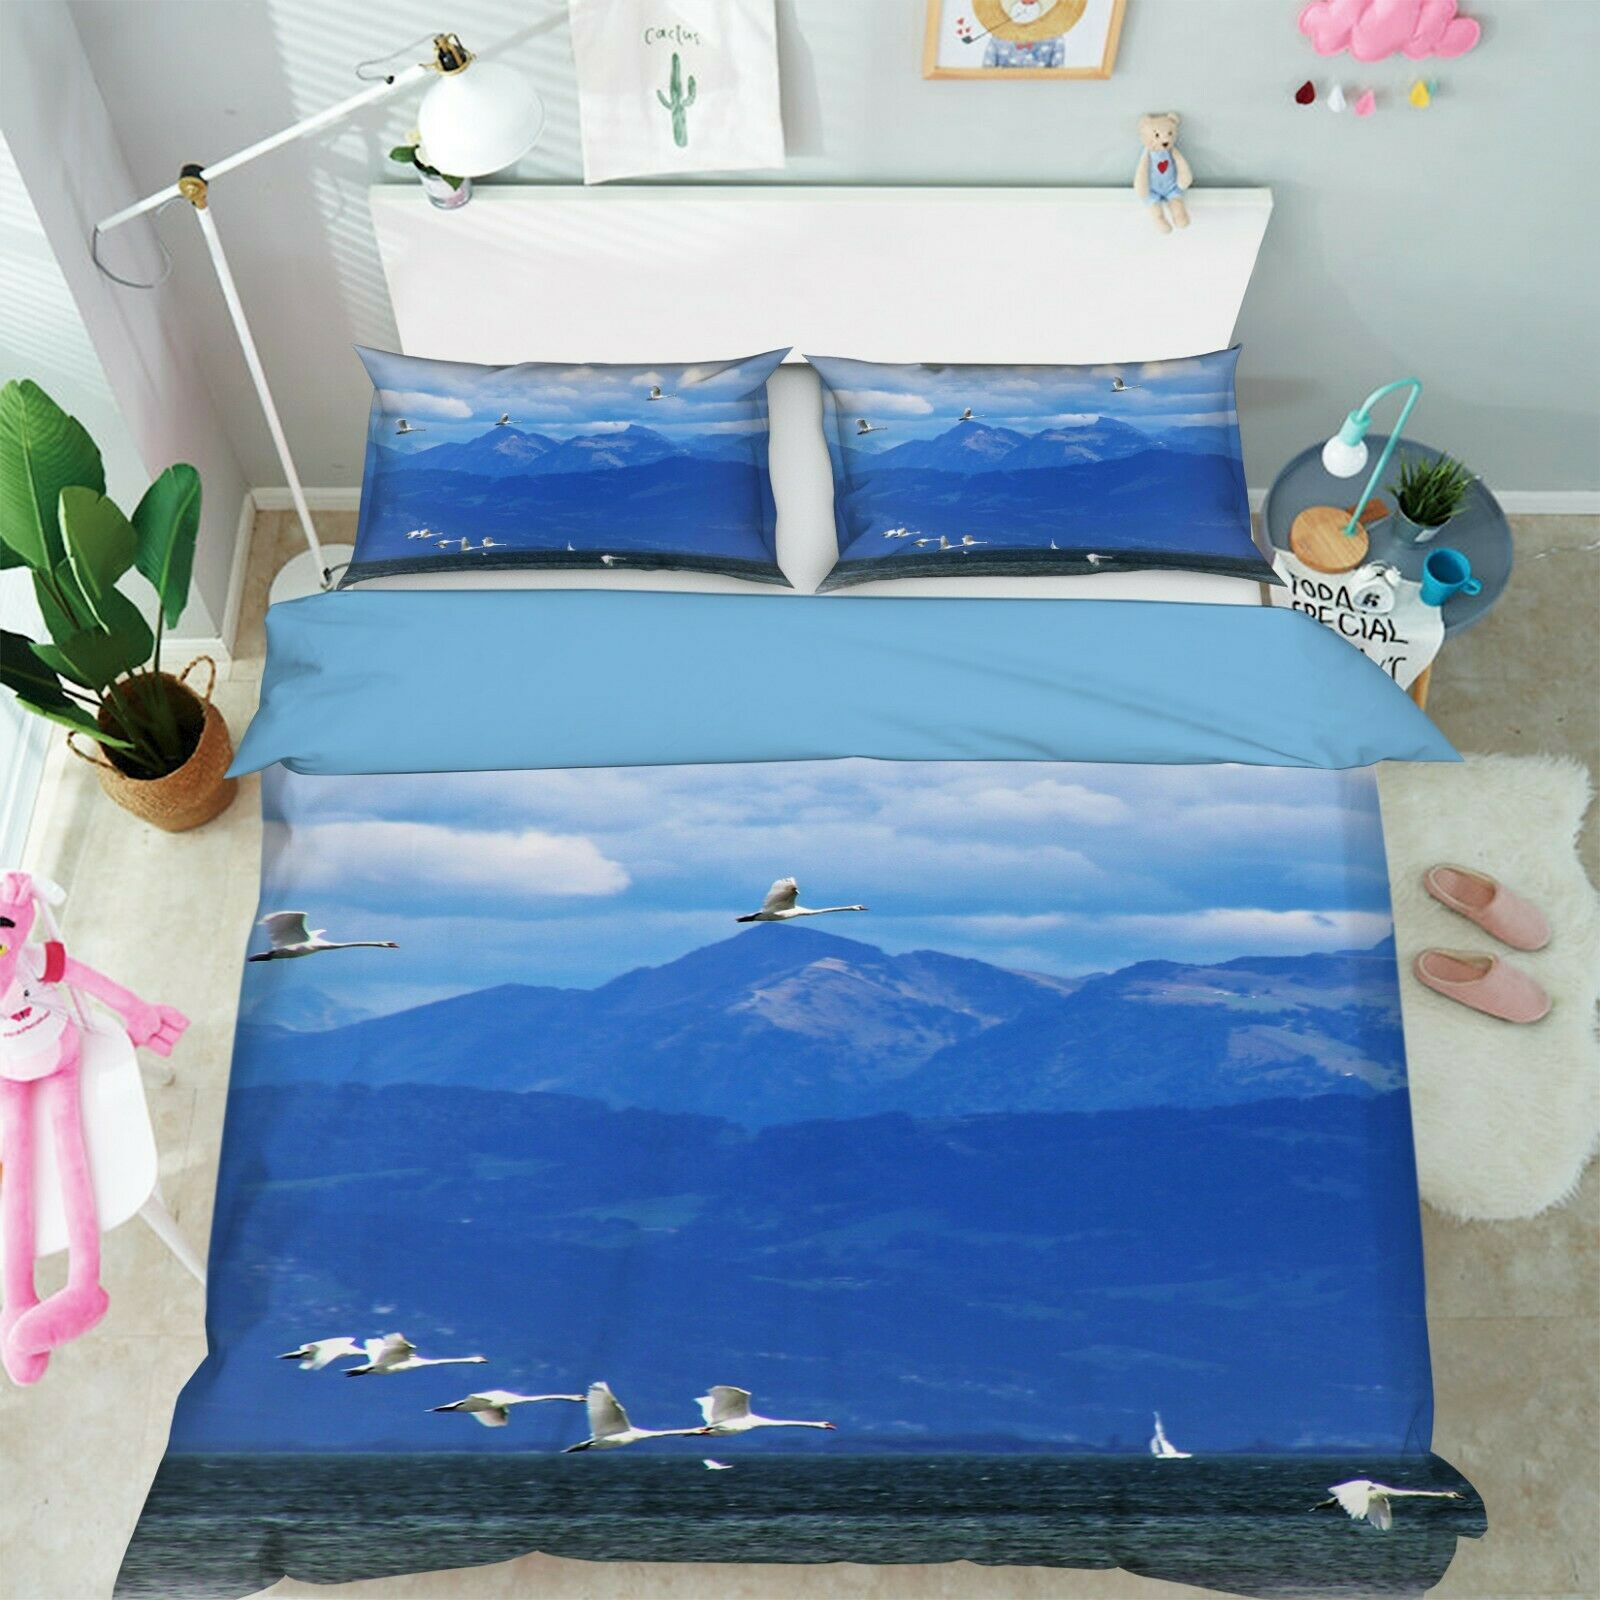 3D Lake Seagull R126 Animal Bed Pillowcases Quilt Duvet Cover Queen King Zoe